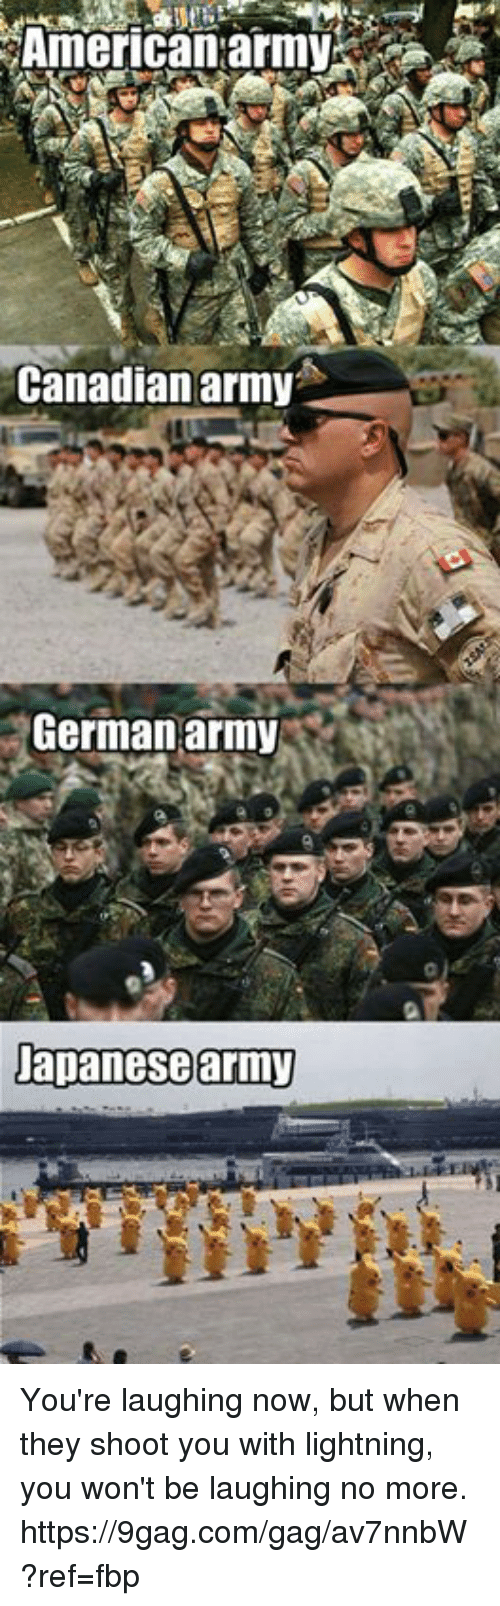 germane: American:army  Canadianarmy  German army  Dapanesearmy You're laughing now, but when they shoot you with lightning, you won't be laughing no more. https://9gag.com/gag/av7nnbW?ref=fbp